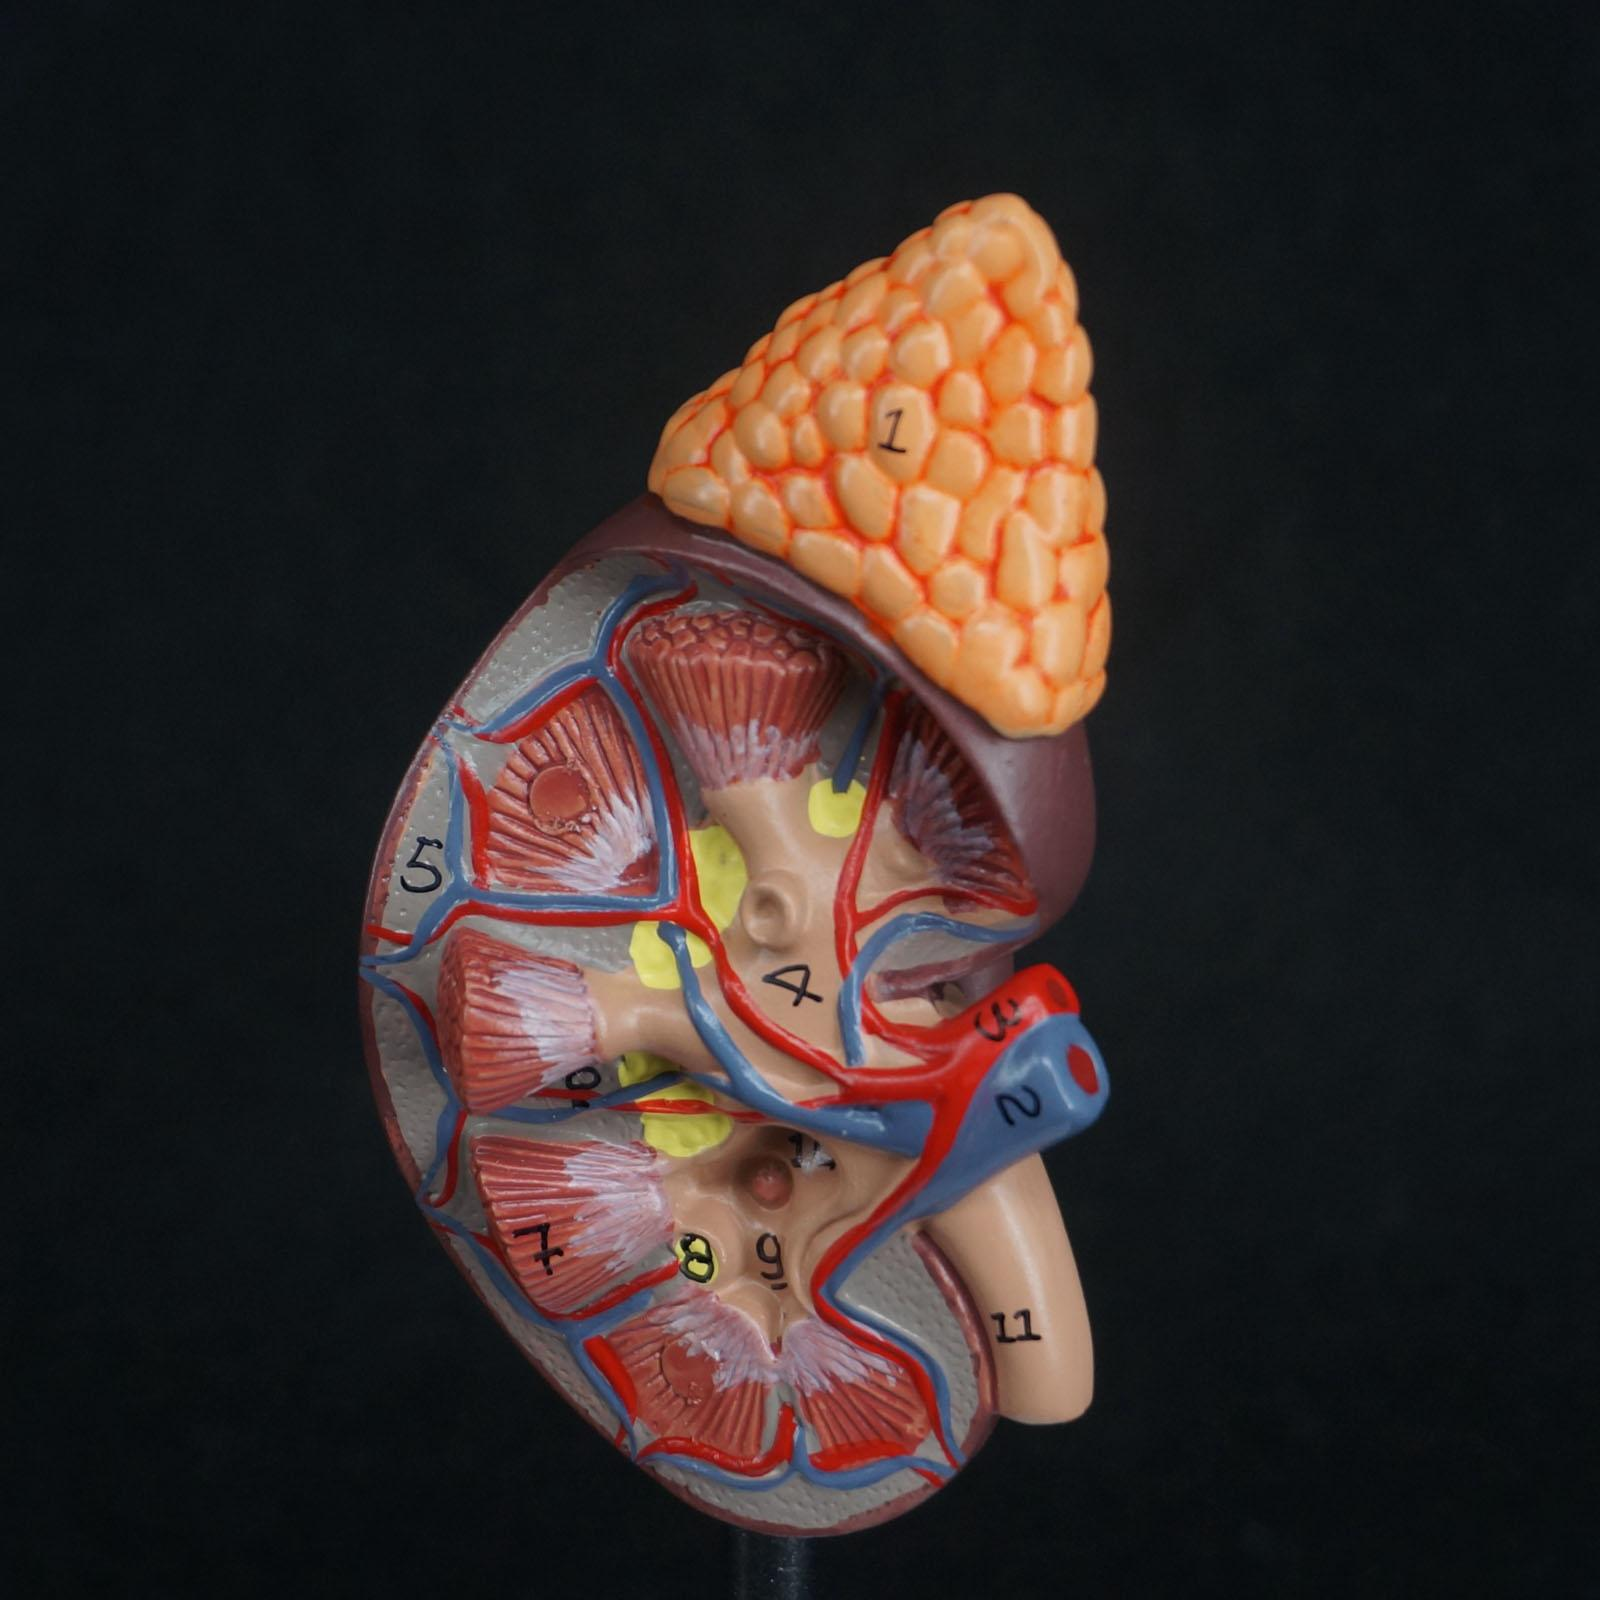 Human Kidney With Adrenal Gland Anatomical Medical Model Urology Anatomy Natural Life Size Teaching Resources